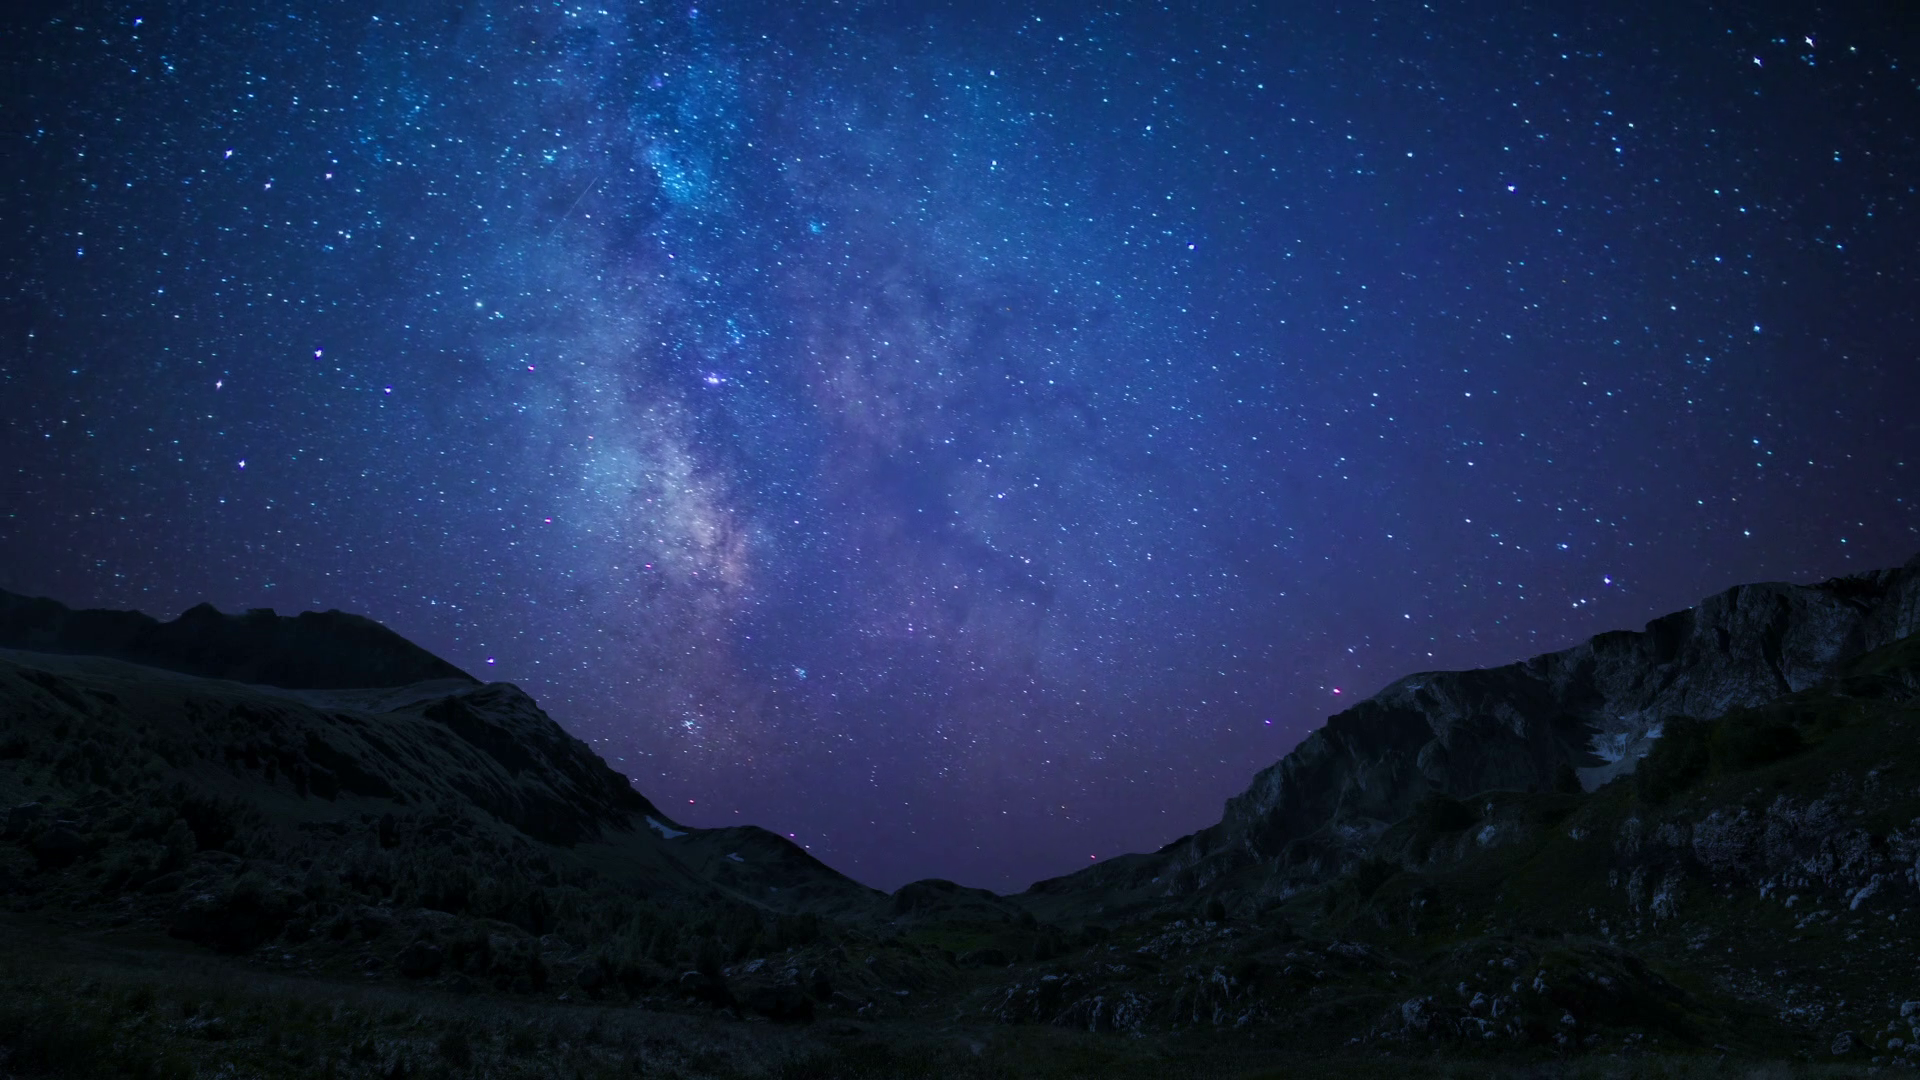 night sky stars milkyway on mountains background Stock Video Footage ...